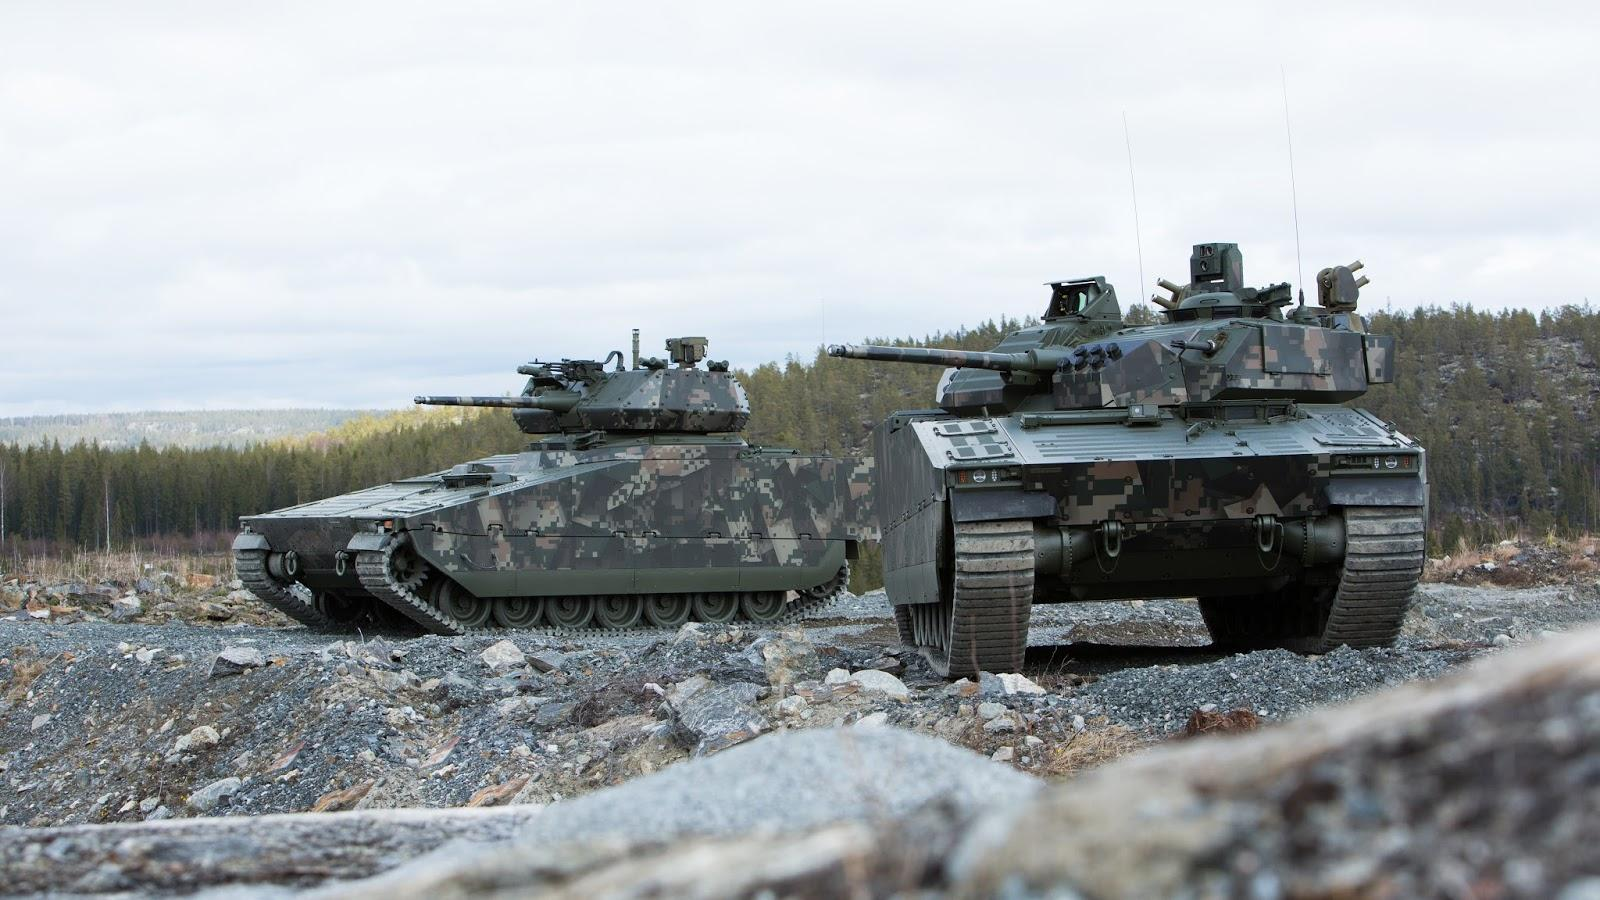 Czech army interested in acquiring Leopard 2A4 tanks in Spain 58